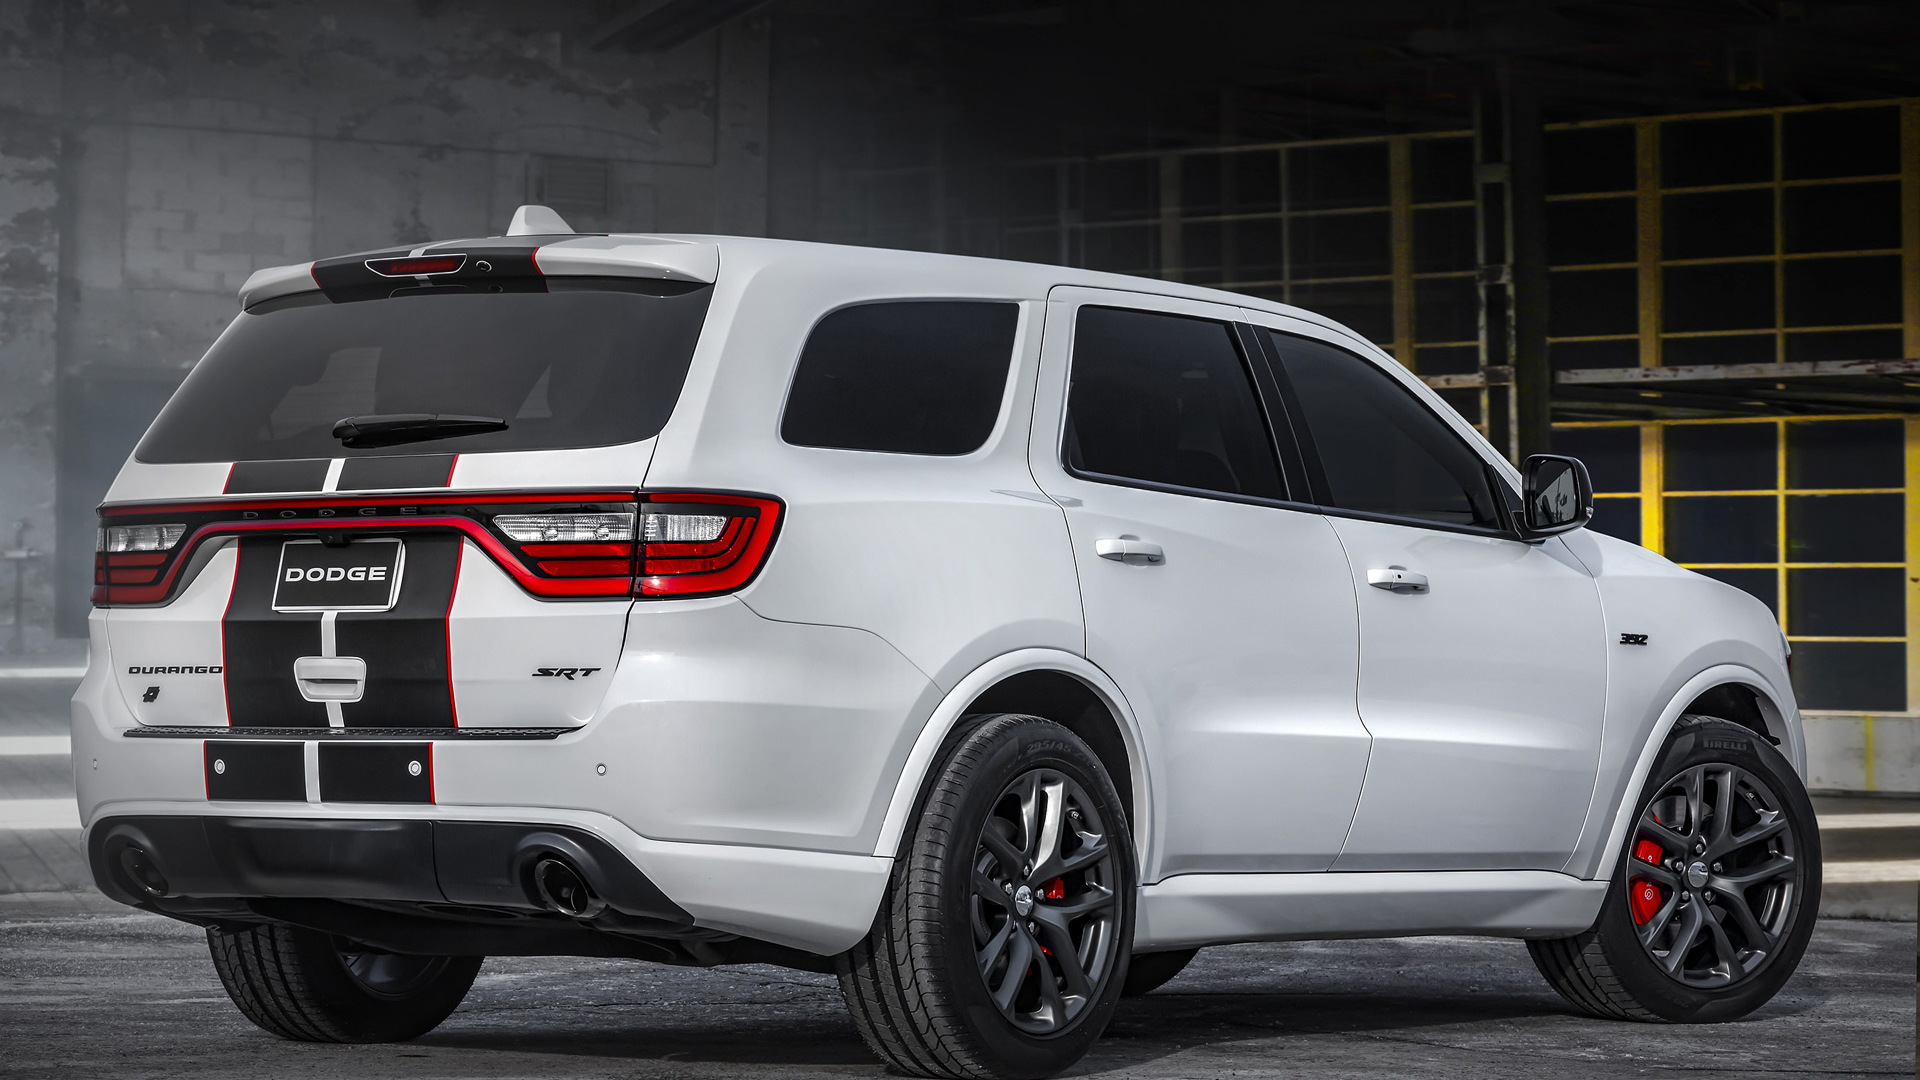 2020 Dodge Durango Srt Brings The Style With Black And Redline Stripe Packs